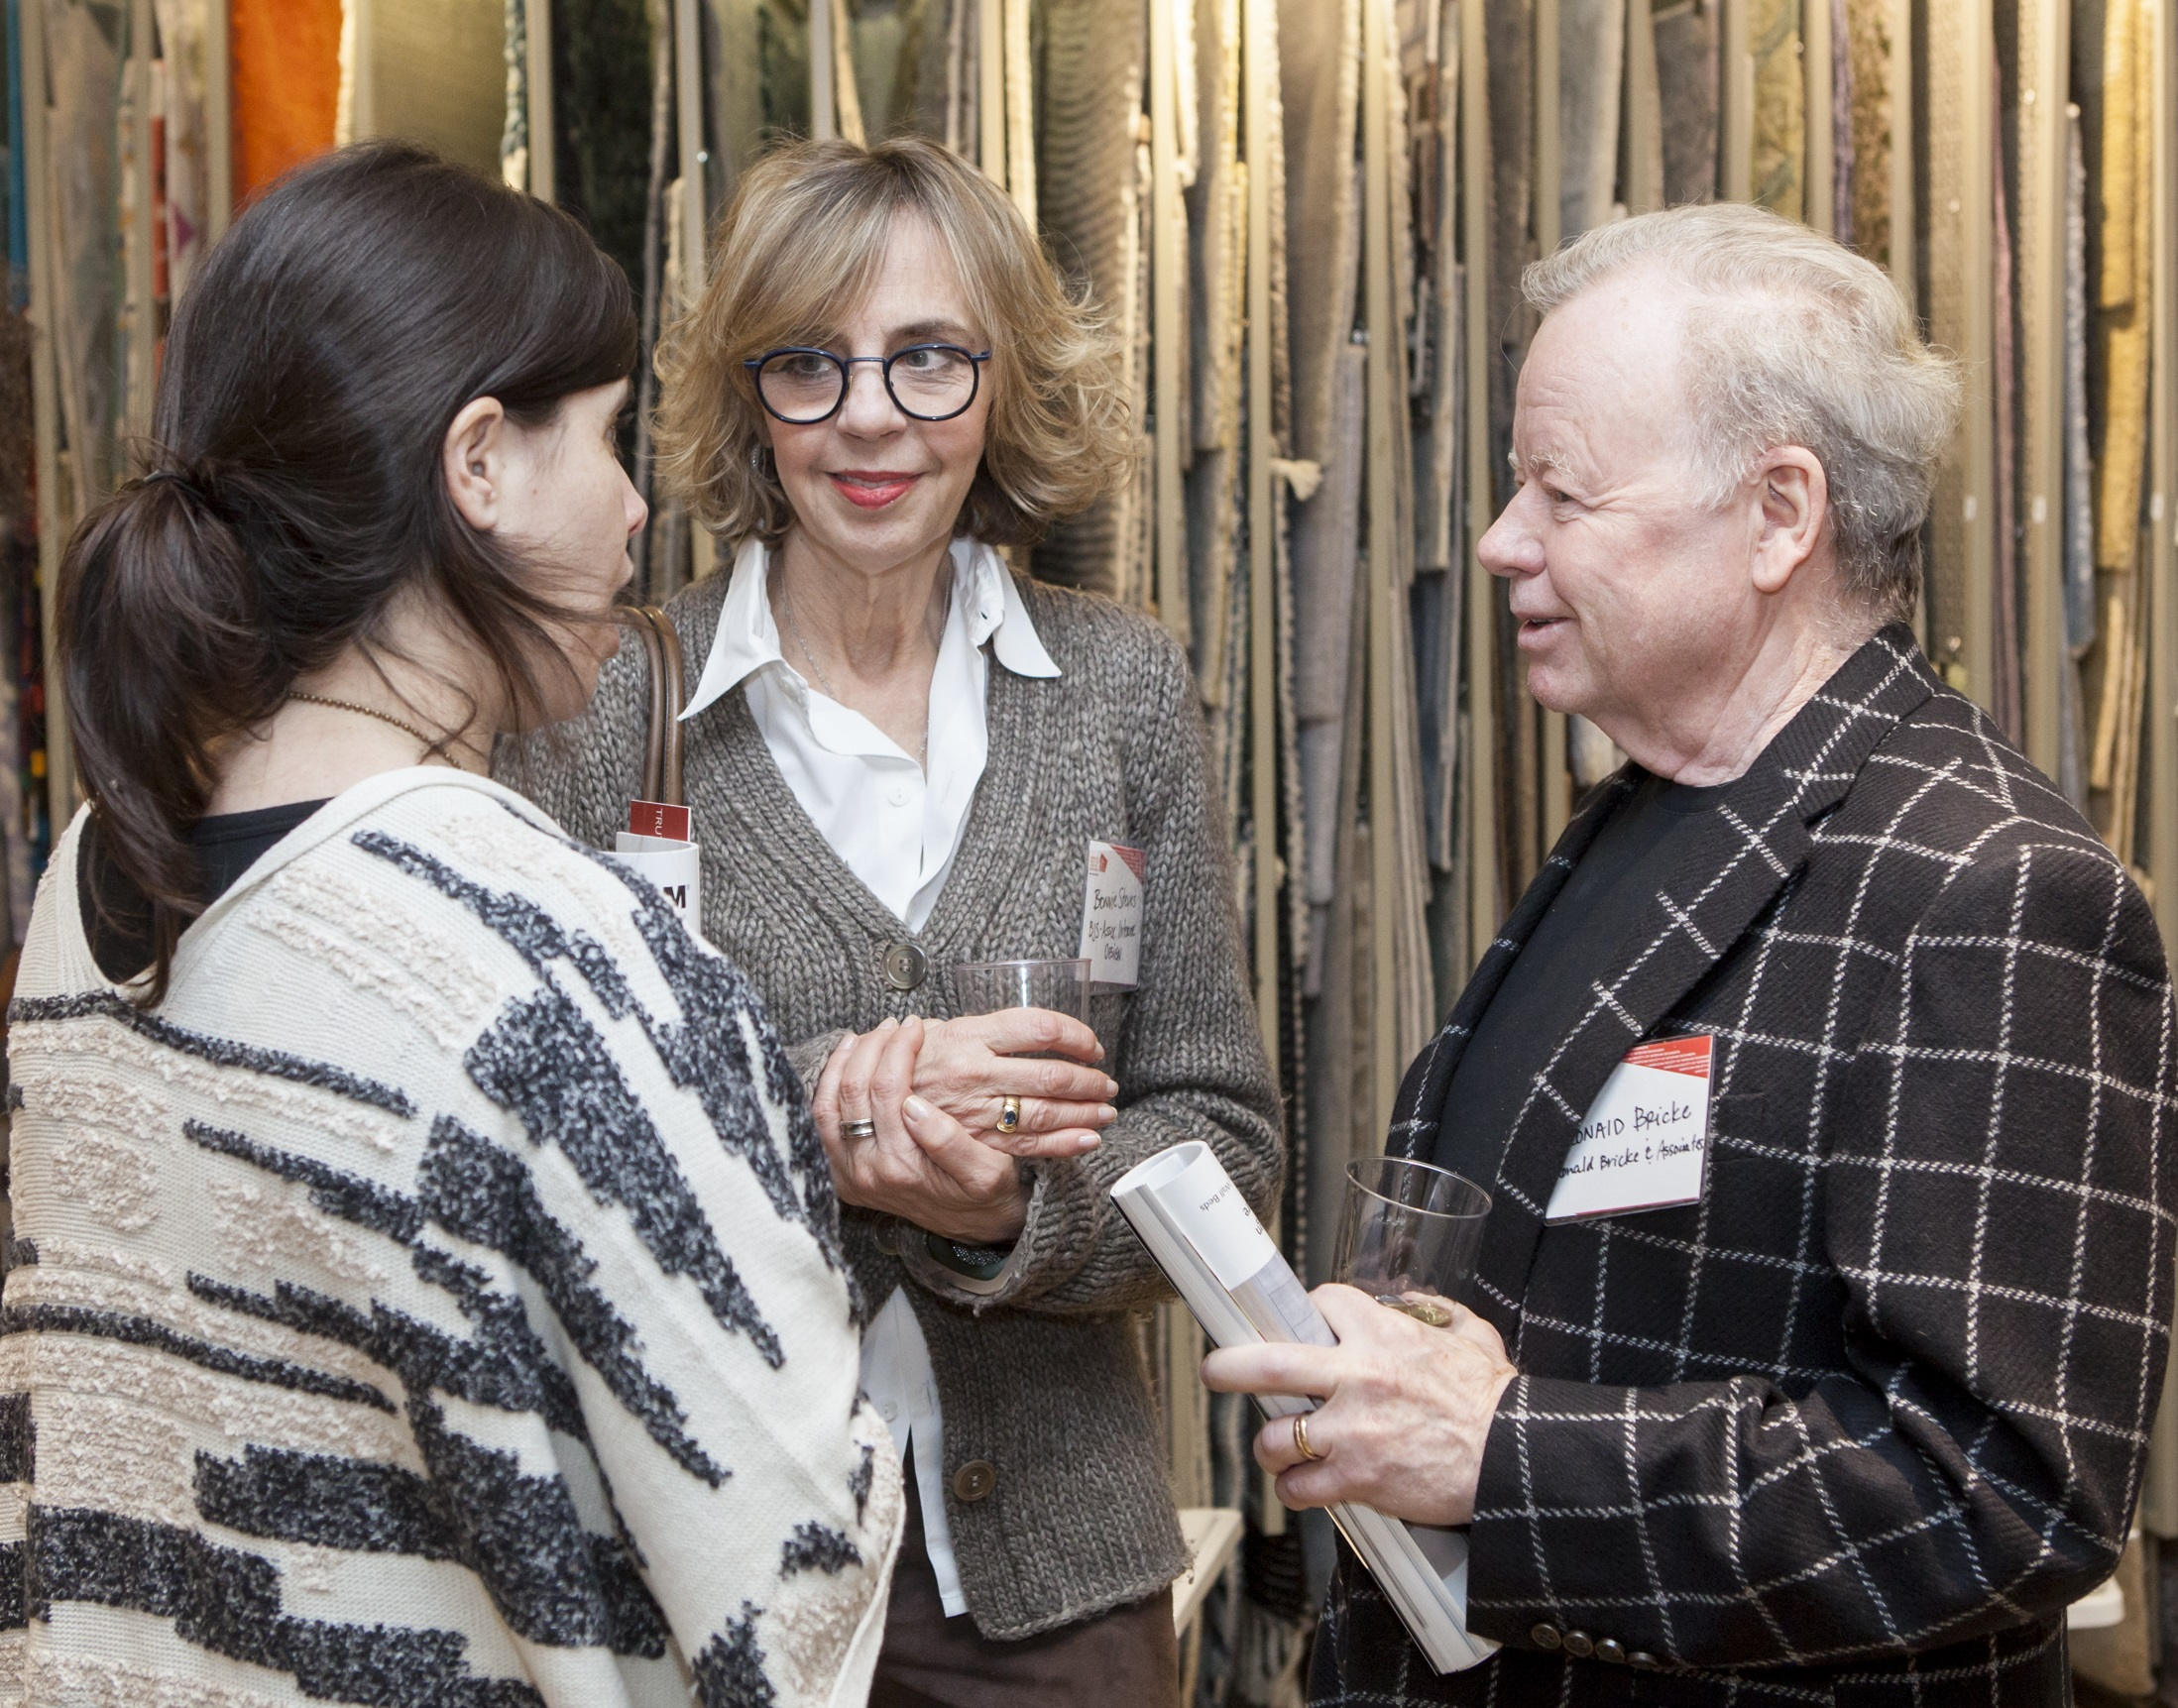 Danielle McWilliams, communications director of ASID NY Metro, chats with Bonnie Steves, BJS Assoc Interior Design, and Ronald Bricke, Ronald Bricke and Associates.